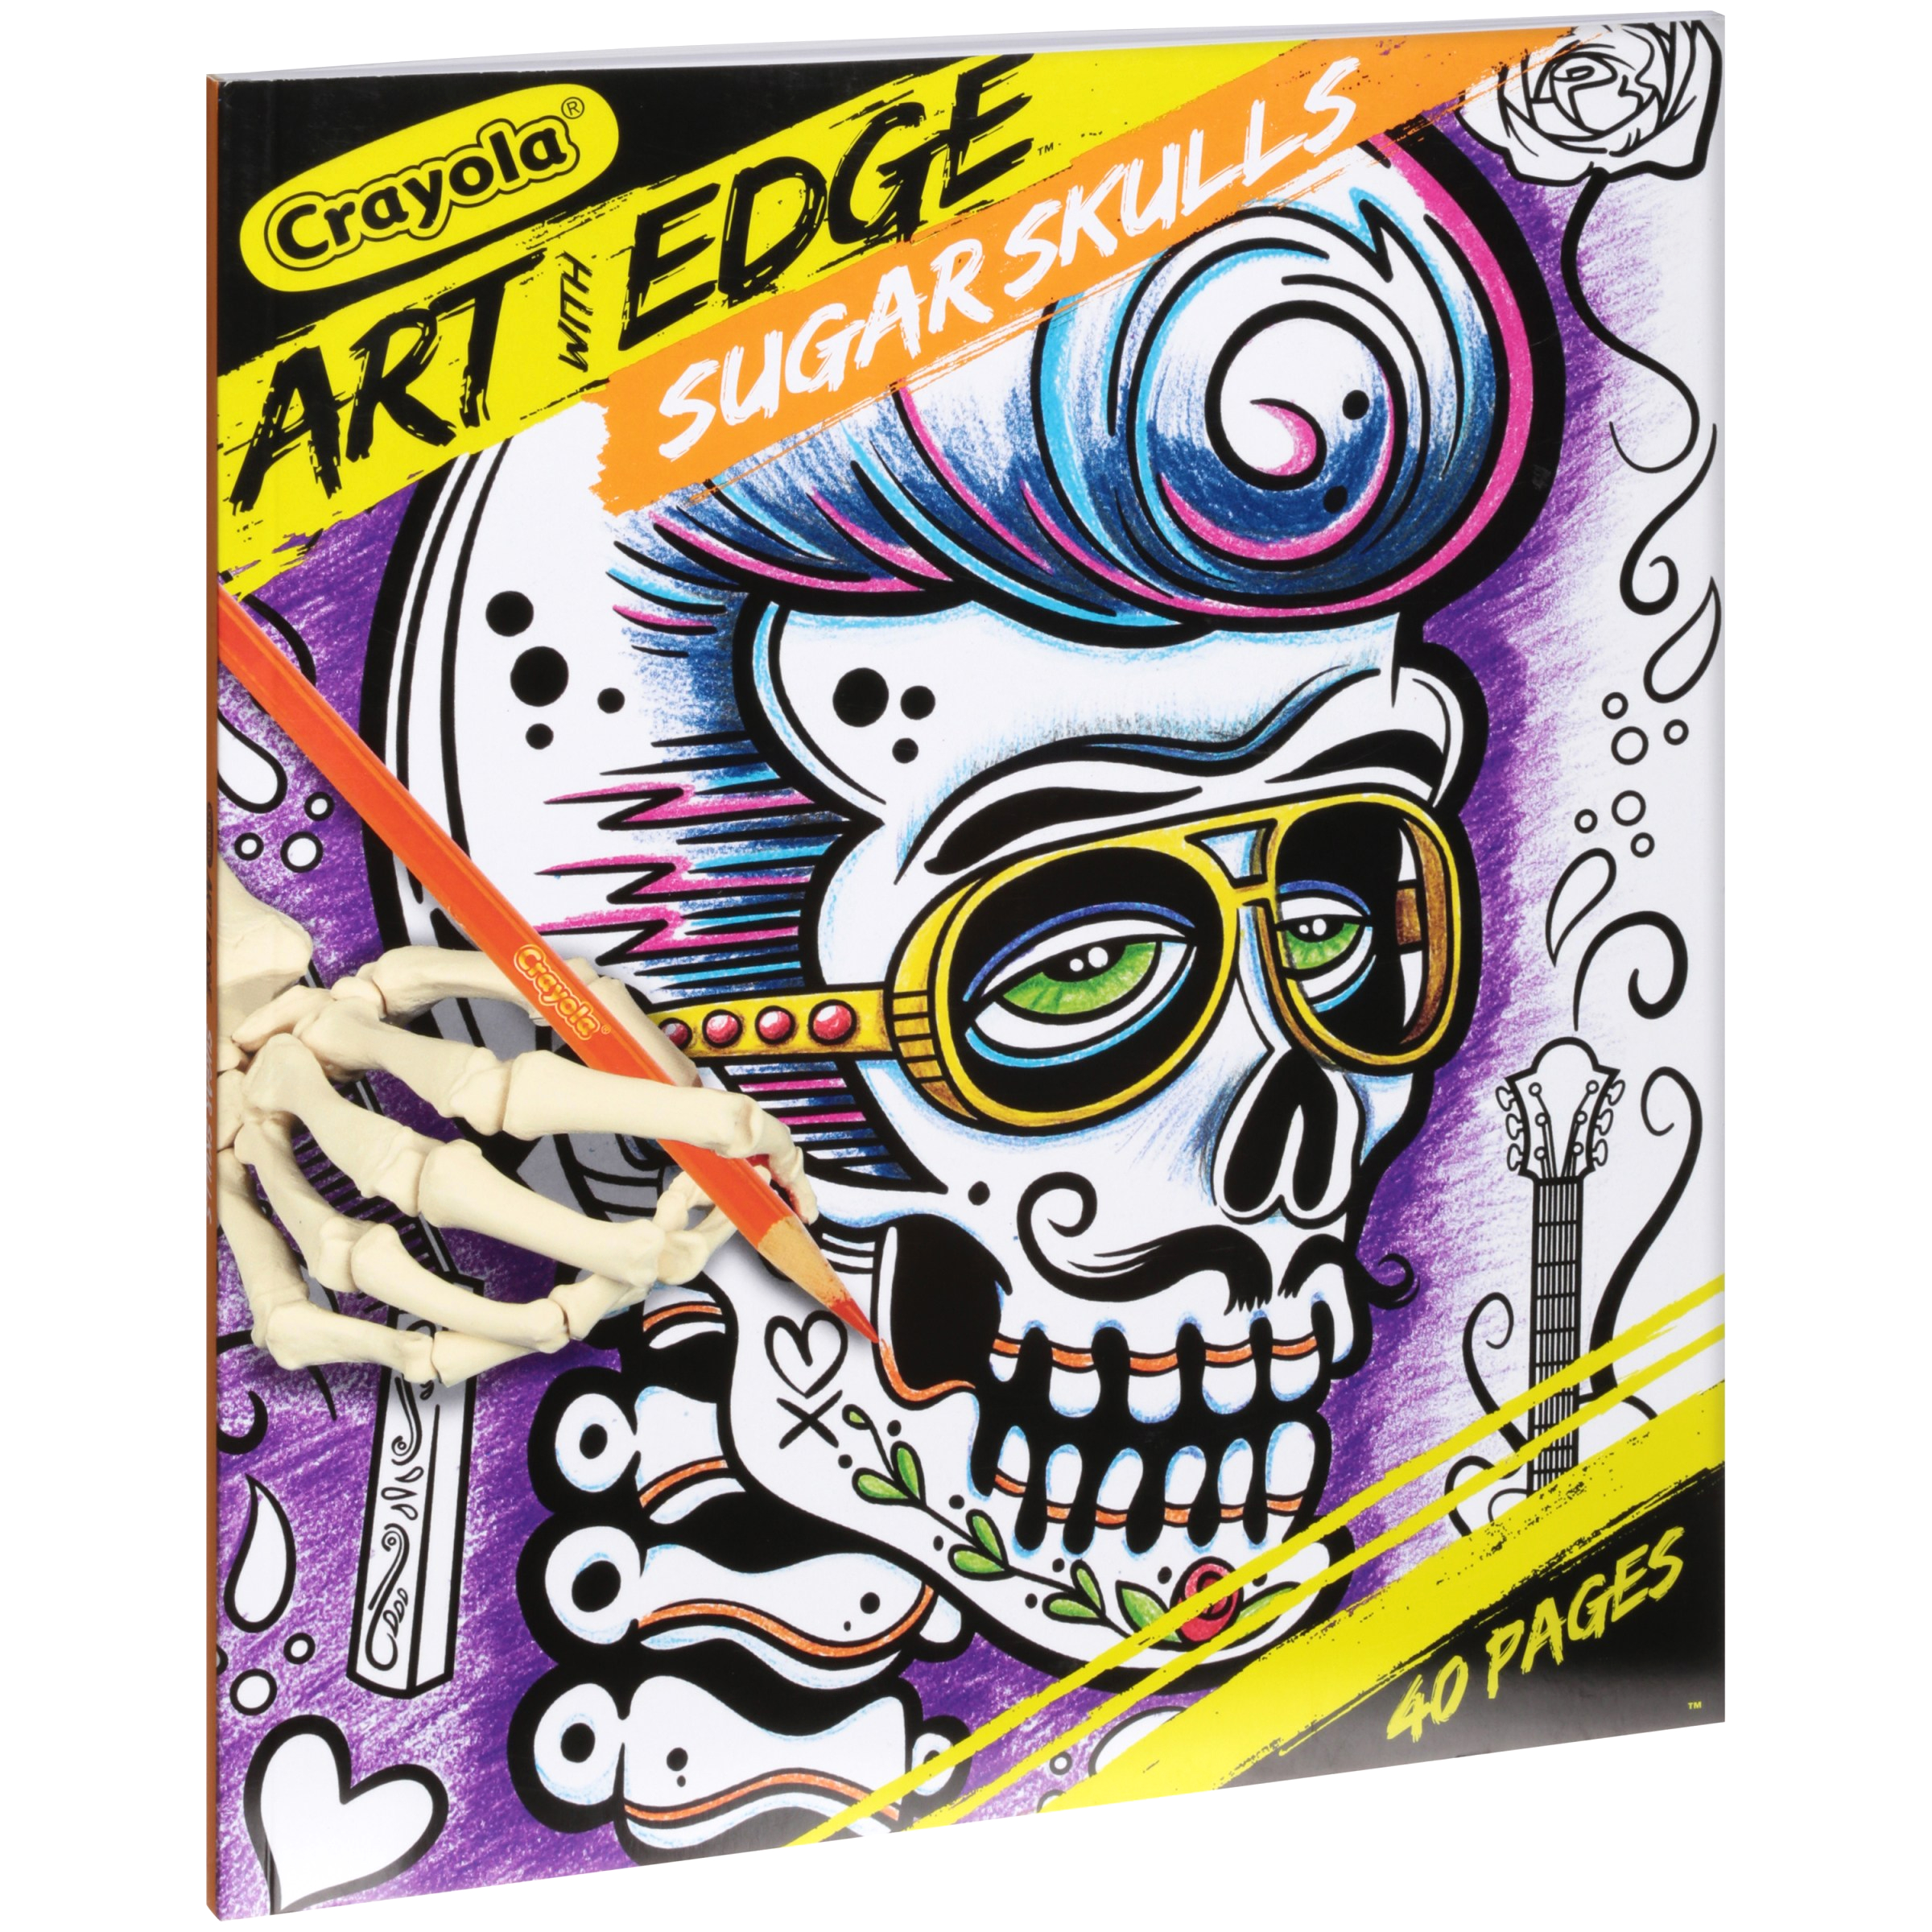 Printable Crayola Art with Edge Coloring Pages Crayola Art with Edge Coloring Book Bundle Sugar Skulls